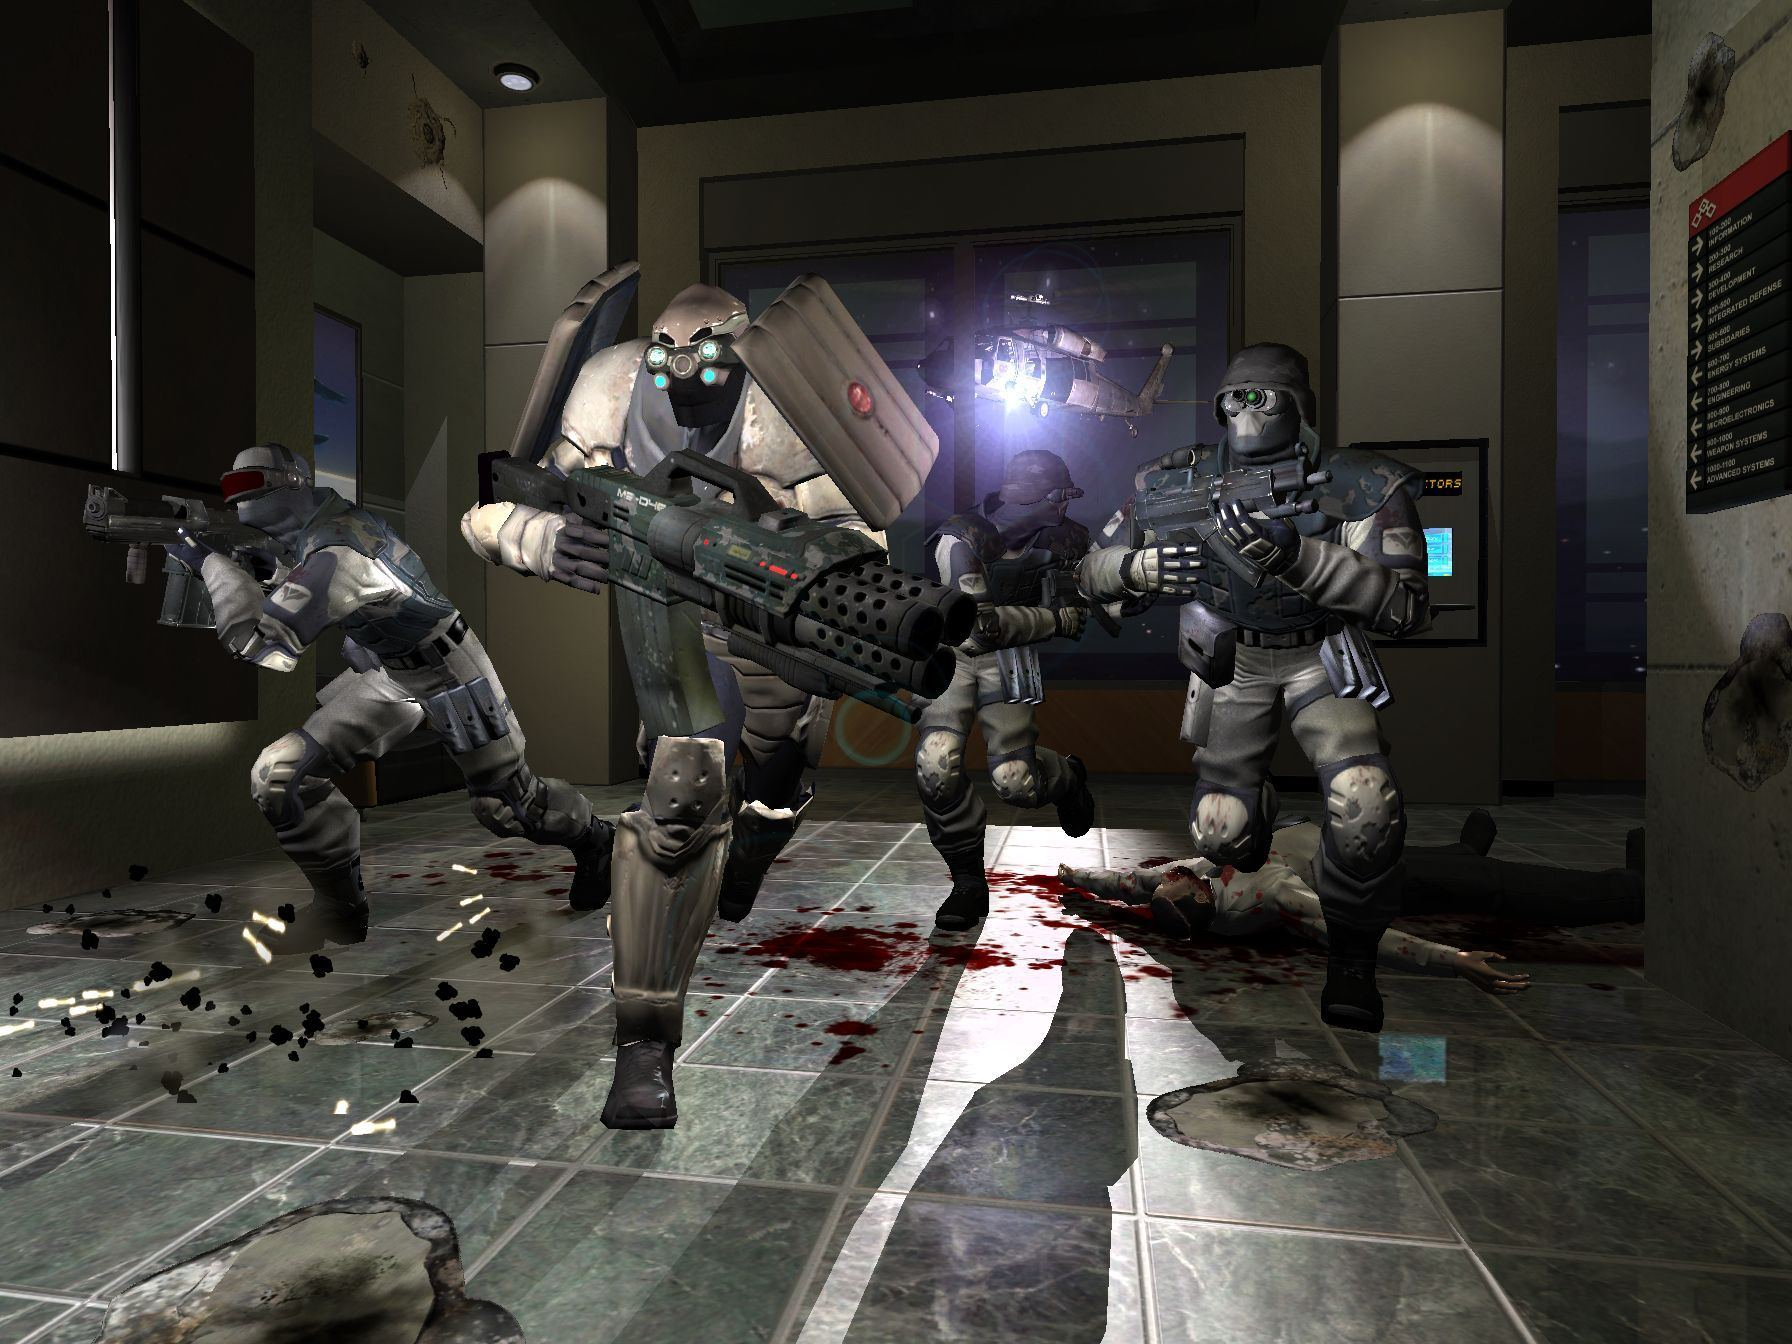 F.E.A.R. Screenshots - Video Game News, Videos, and File Downloads ...